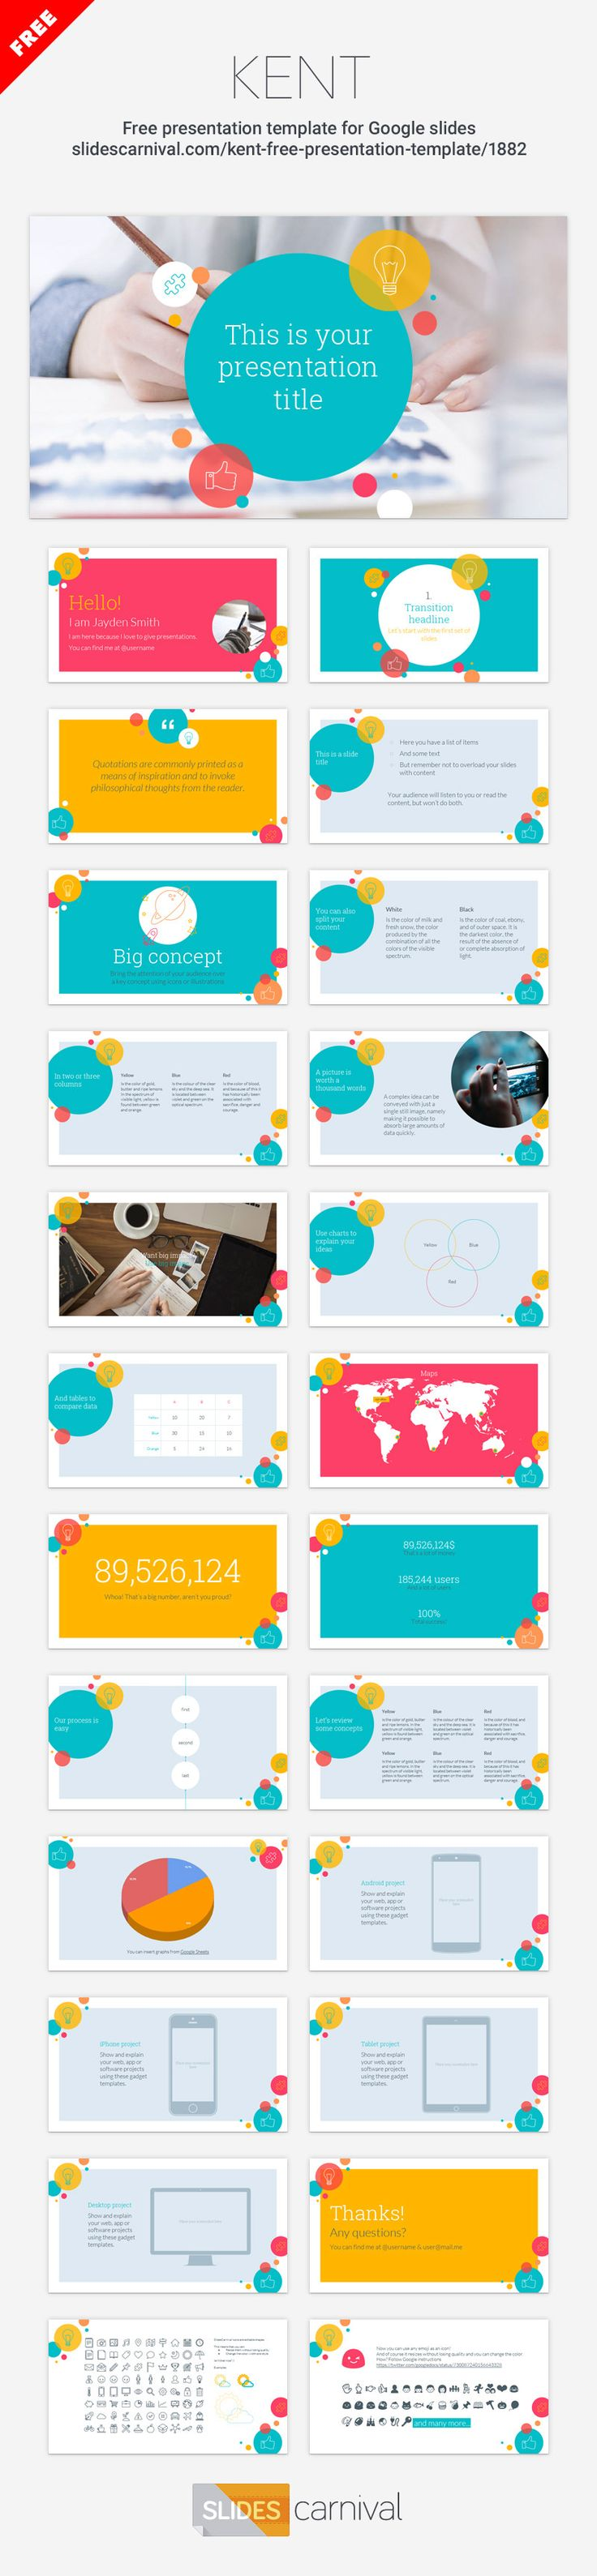 A free presentation template for Powerpoint or Google Slides. This theme has bold and lively design for your presentations with a playful pattern of circles and icons. If you're looking to enliven the audience and convey a positive and cheerful message this template can help you.